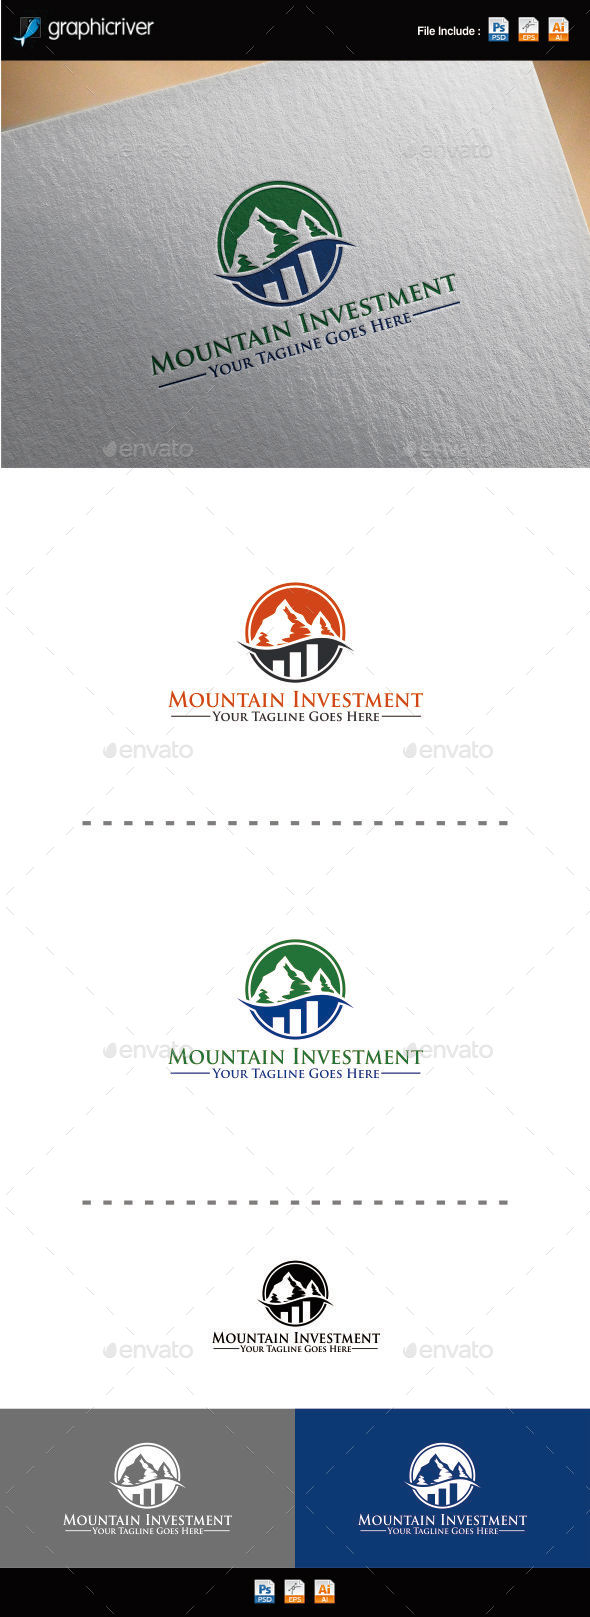 GraphicRiver Mountain Investment Logo 10334769